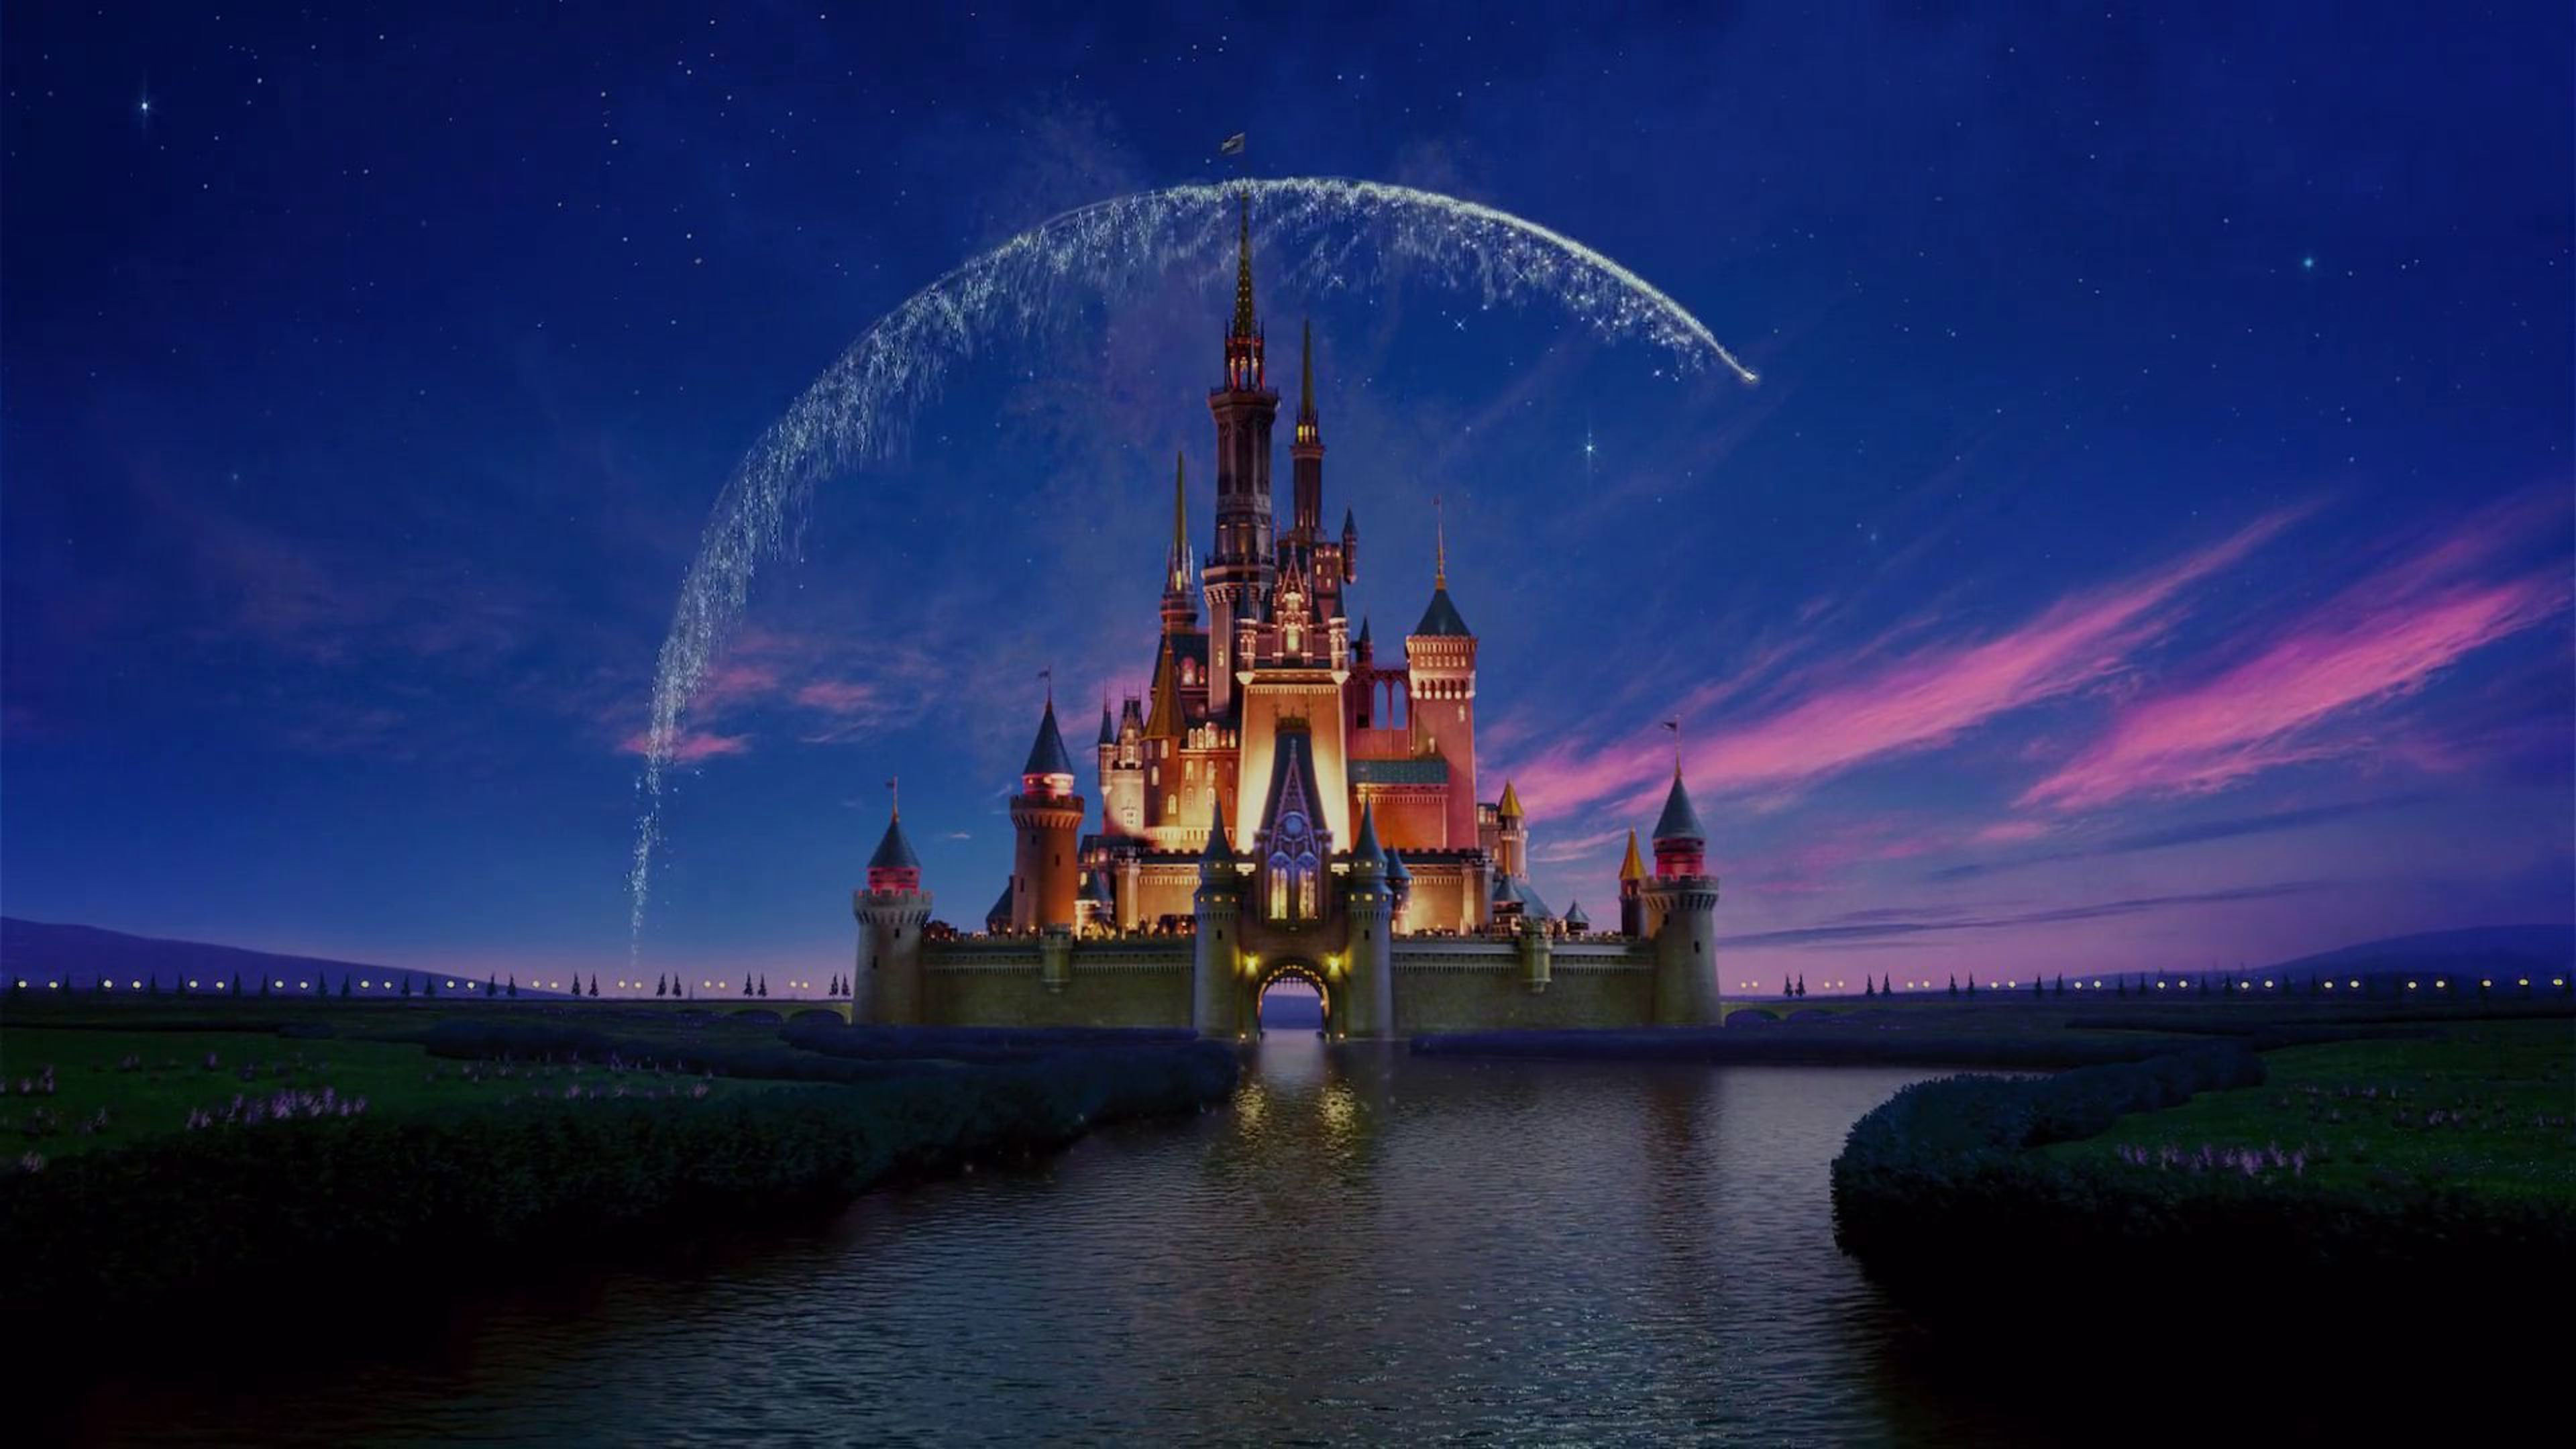 3840x2160 Disney images Disney HD wallpaper and background photos